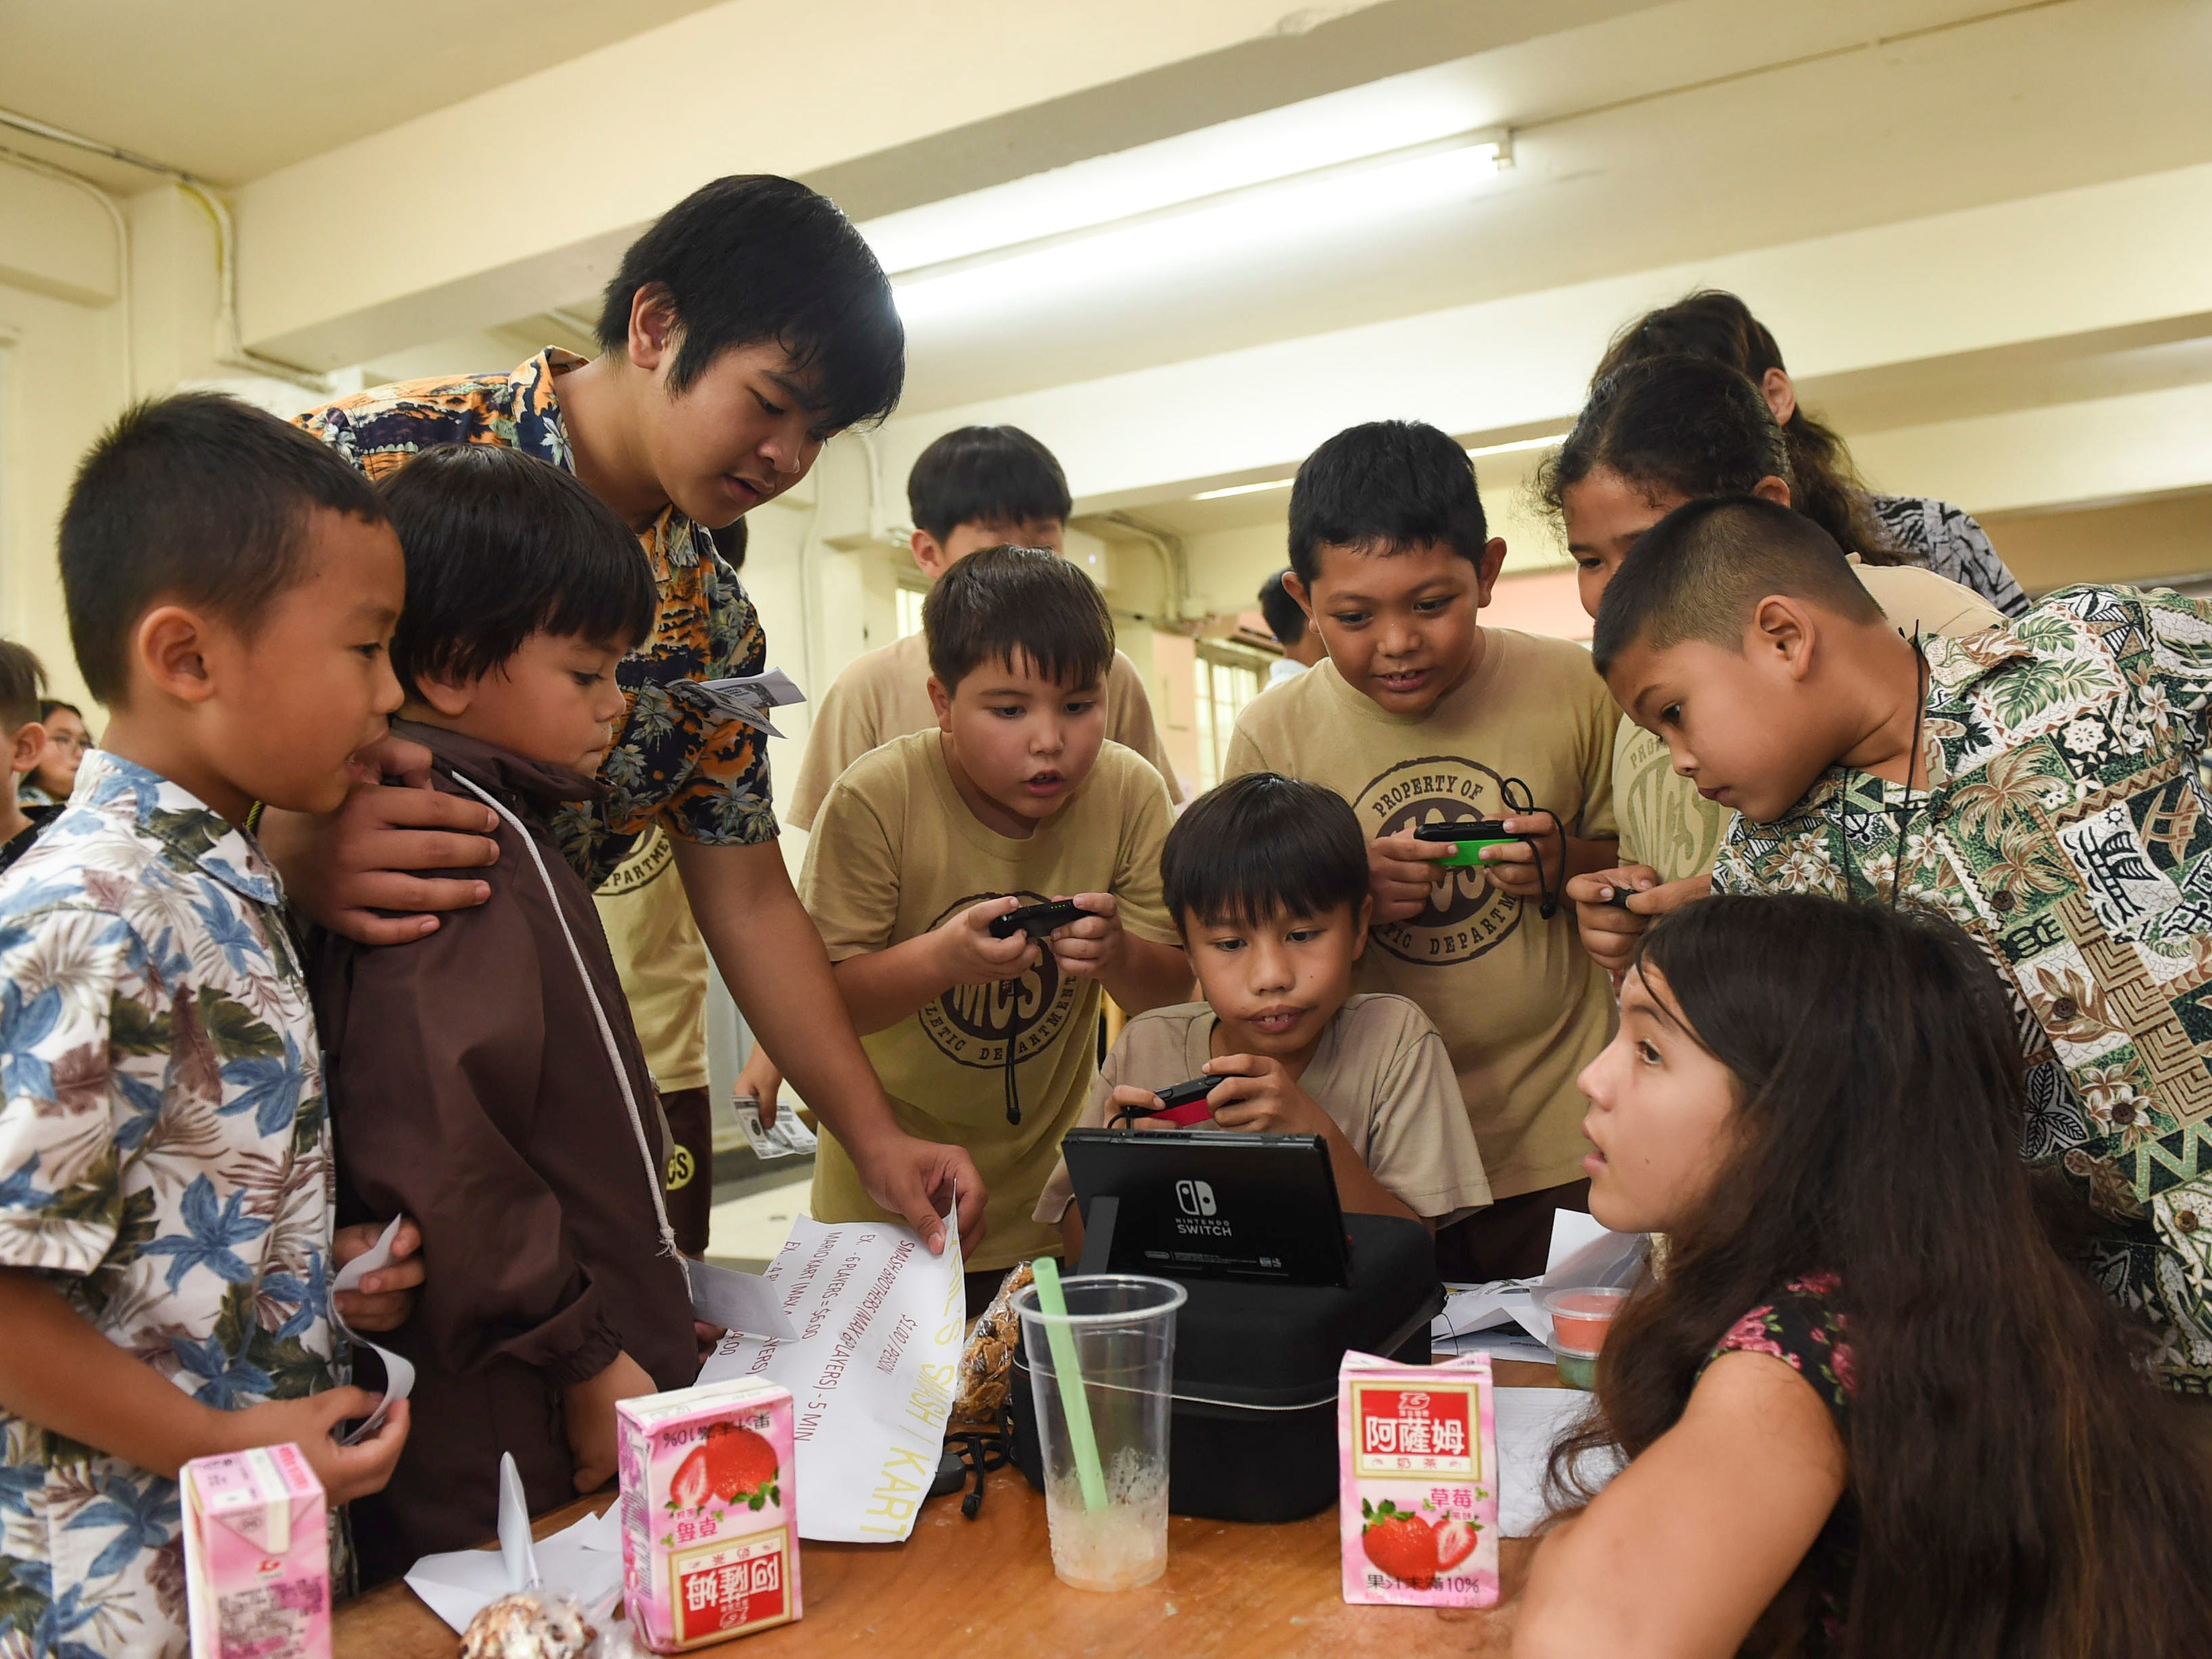 Elementary schoolers gather to play a Nintendo Switch game at 8th-grader Cyril Gustilo's, top left, game stand during the 5th Annual Ysrael School of Business Retail Bazaar and Entrepreneur Fair at Our Lady of Mount Carmel Catholic School in Agat, Jan. 18, 2019.